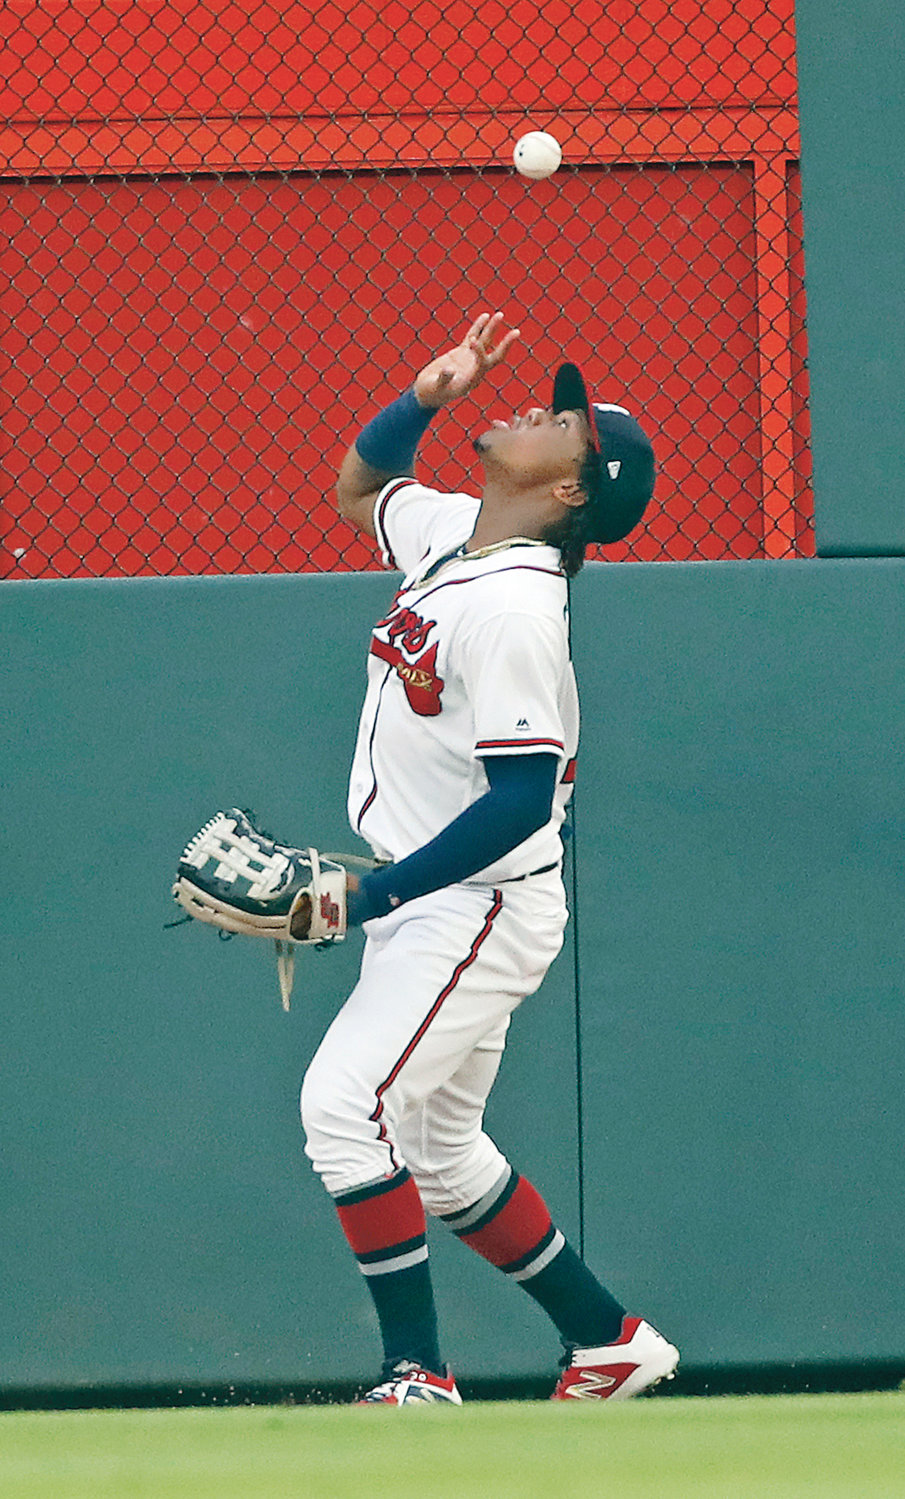 ATLANTA BRAVES center fielder Ronald Acuna Jr. (13) bare hands a ball hit for double by New York Mets' Jeff McNeil in the third inning Tuesday, in Atlanta.